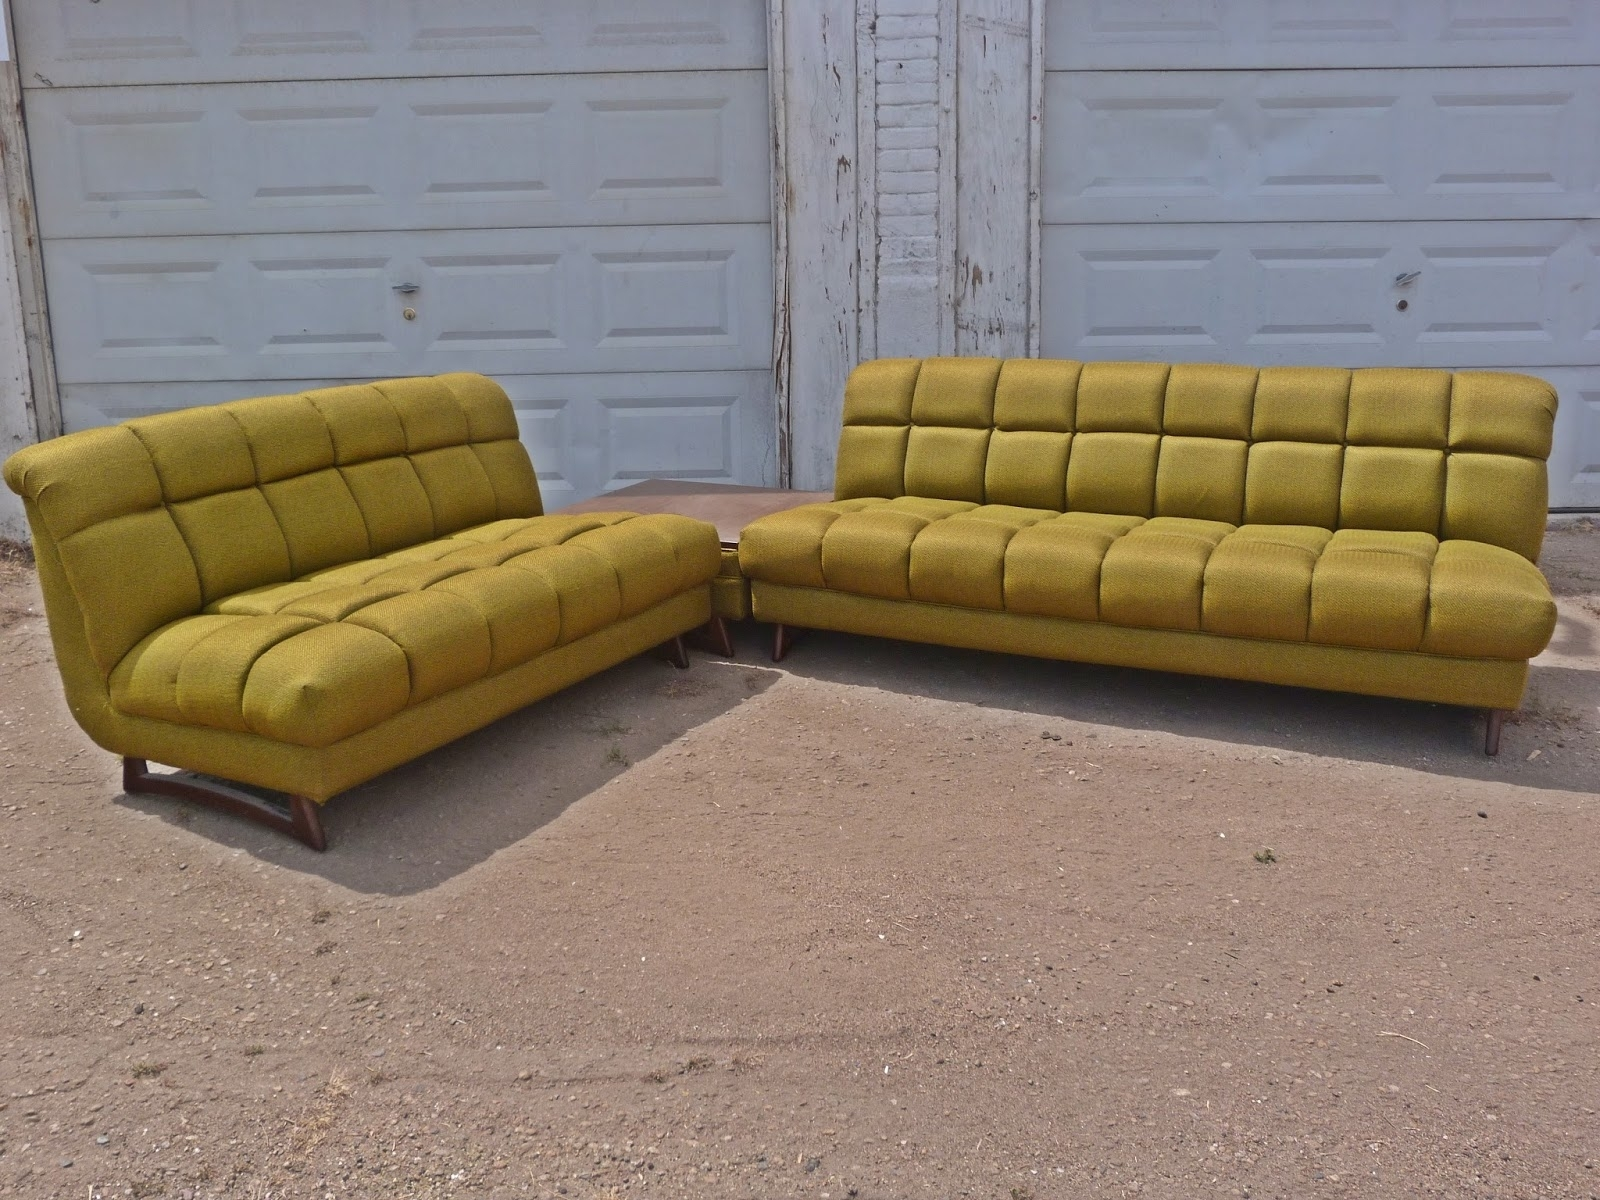 Vintage Sectional Sofa 20 With Vintage Sectional Sofa | Jinanhongyu With Vintage Sectional Sofas (View 10 of 10)